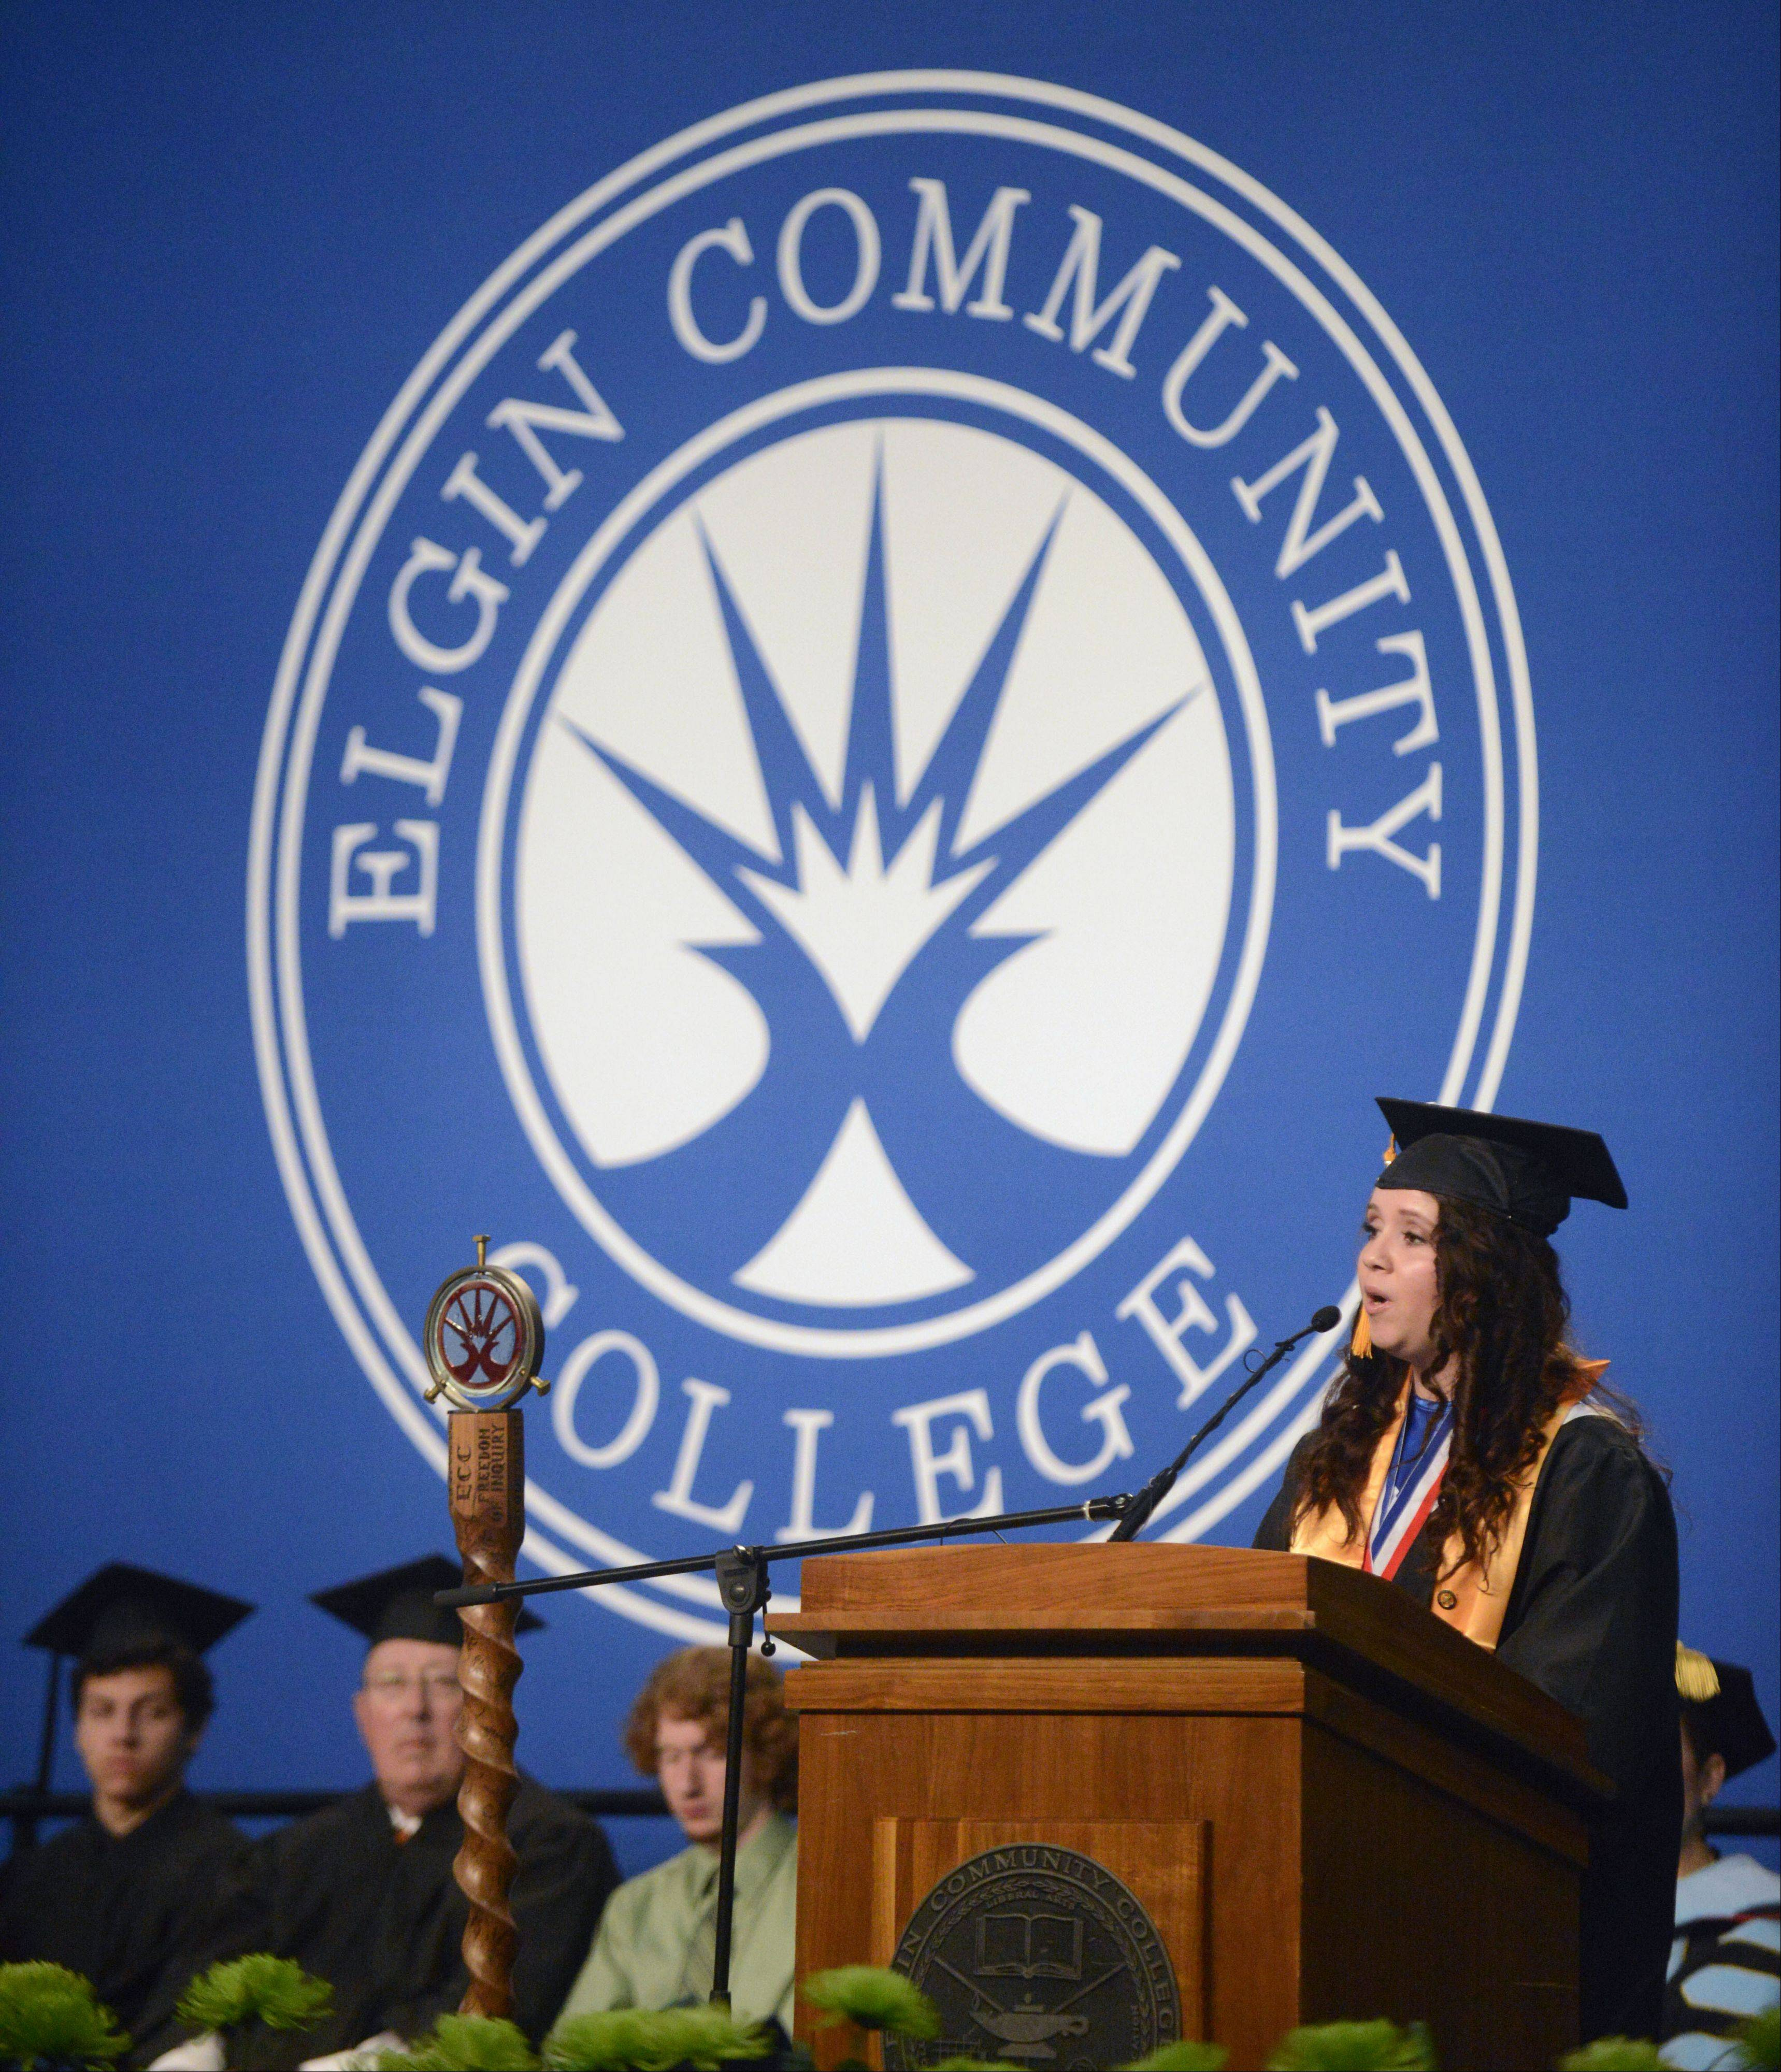 Elgin Community College nursing graduate and student speaker Karen Gonzalez addresses her classmates during their commencement ceremony on Saturday. To see more photos and order reprints, visit www.dailyherald.com/galleries/news/graduations/